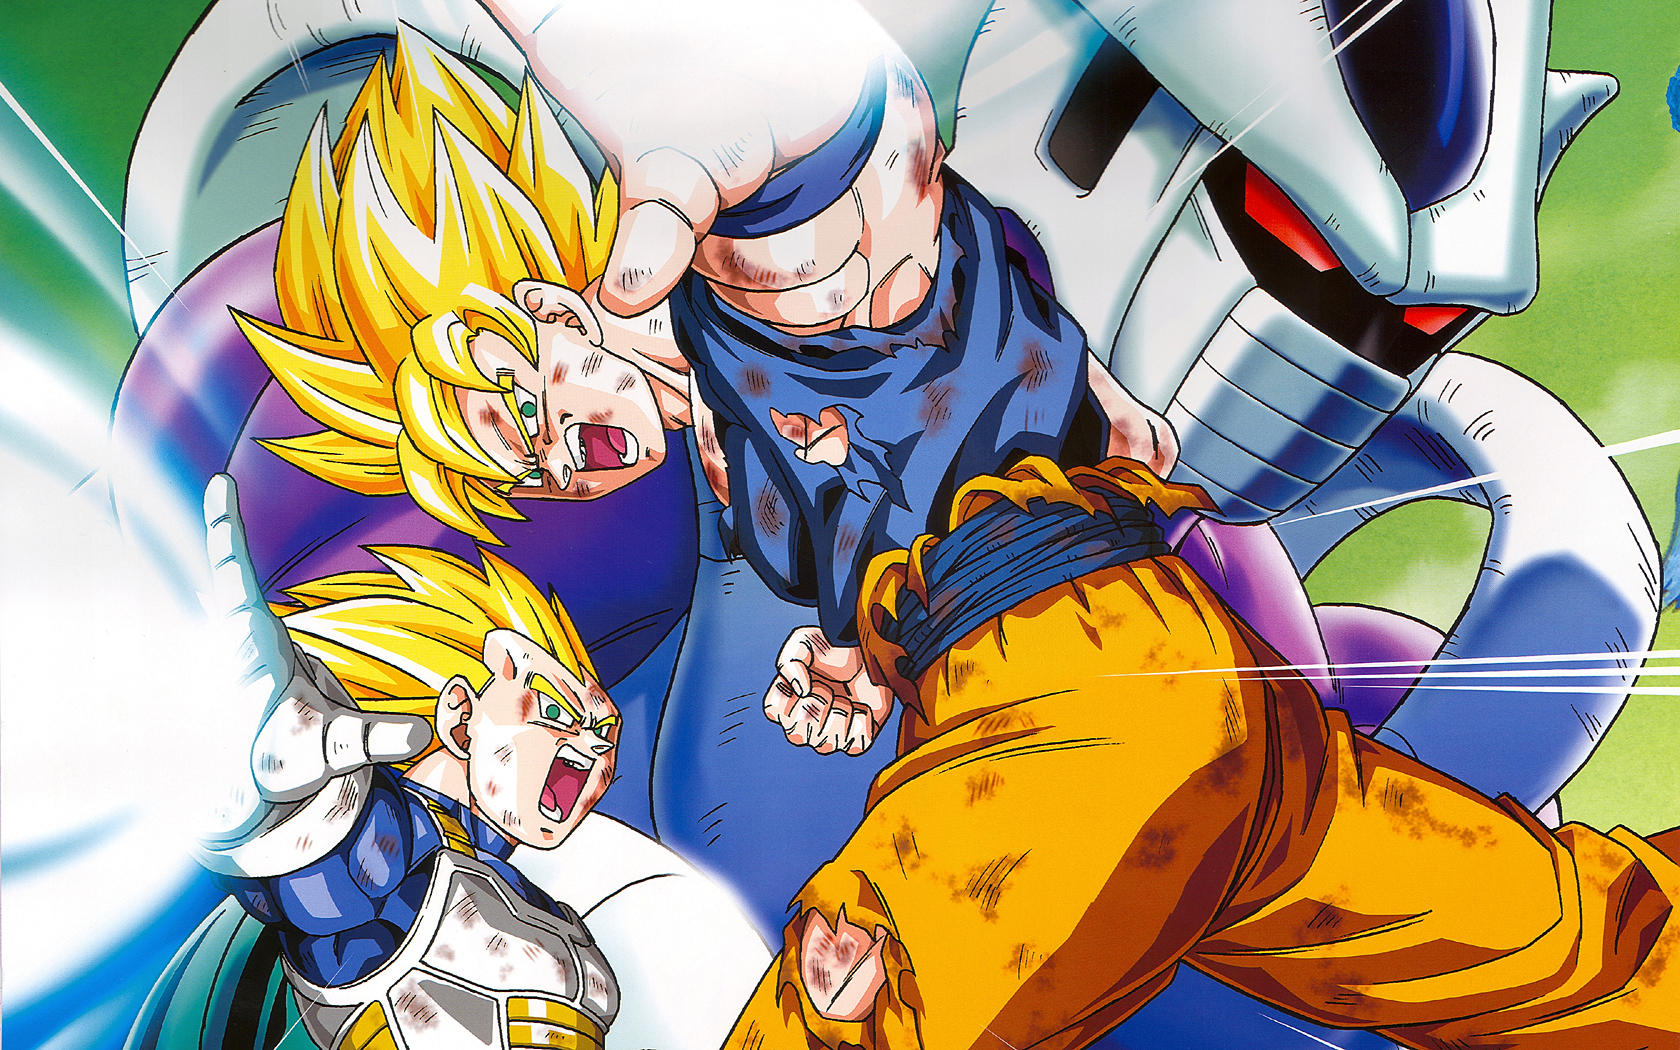 Dragon Ball Z Res: 1680x1050 / Size:2048kb. Views: 578247